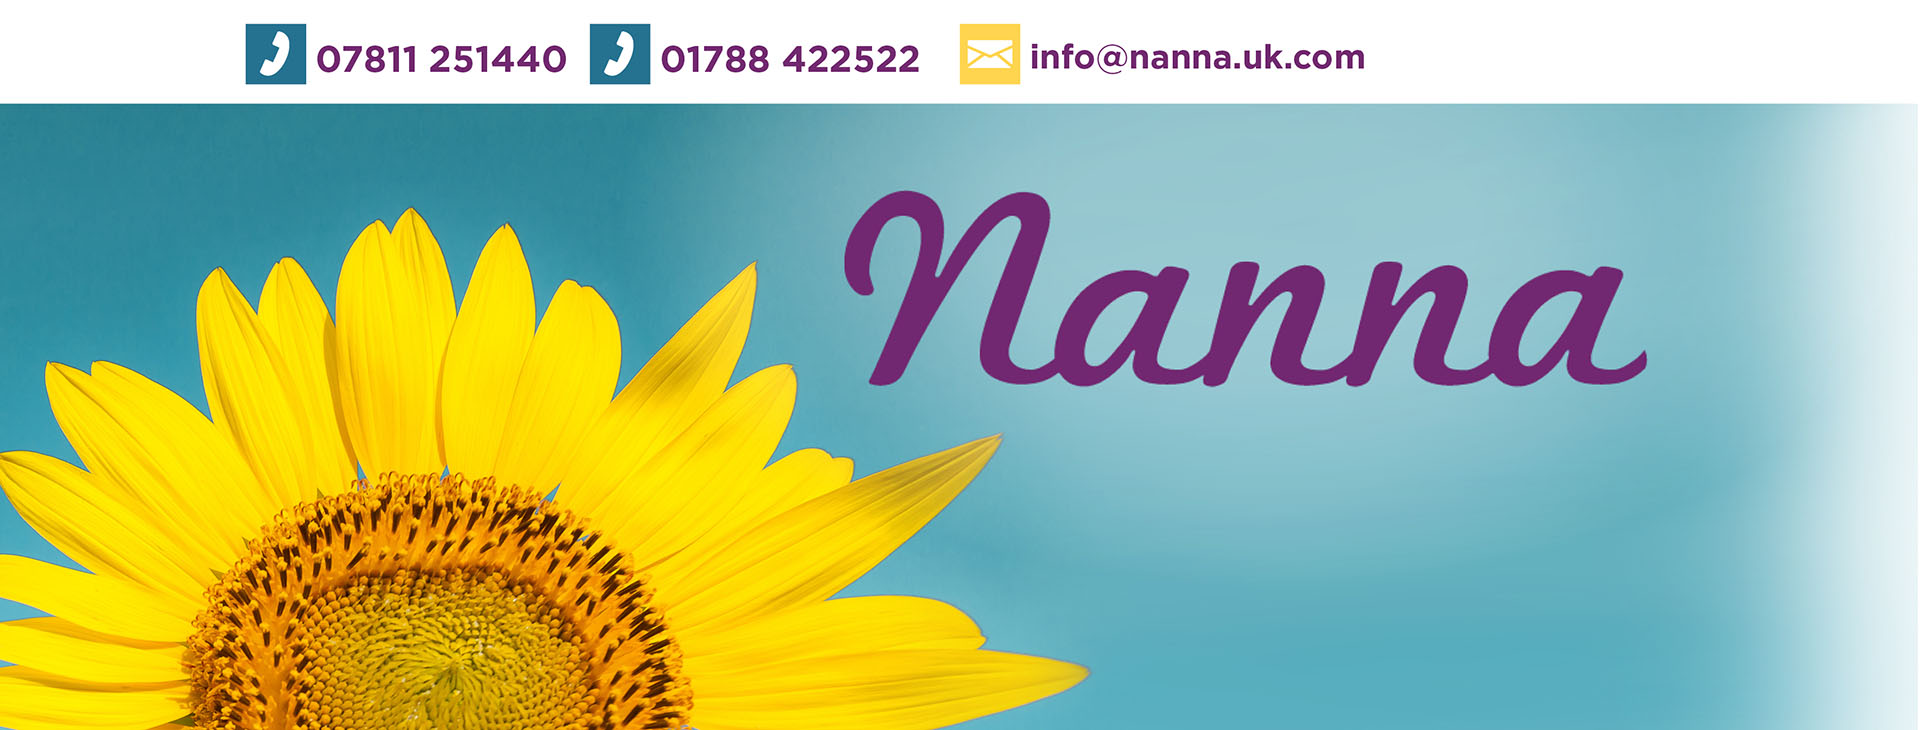 Nanna Recruitment Ltd's main image